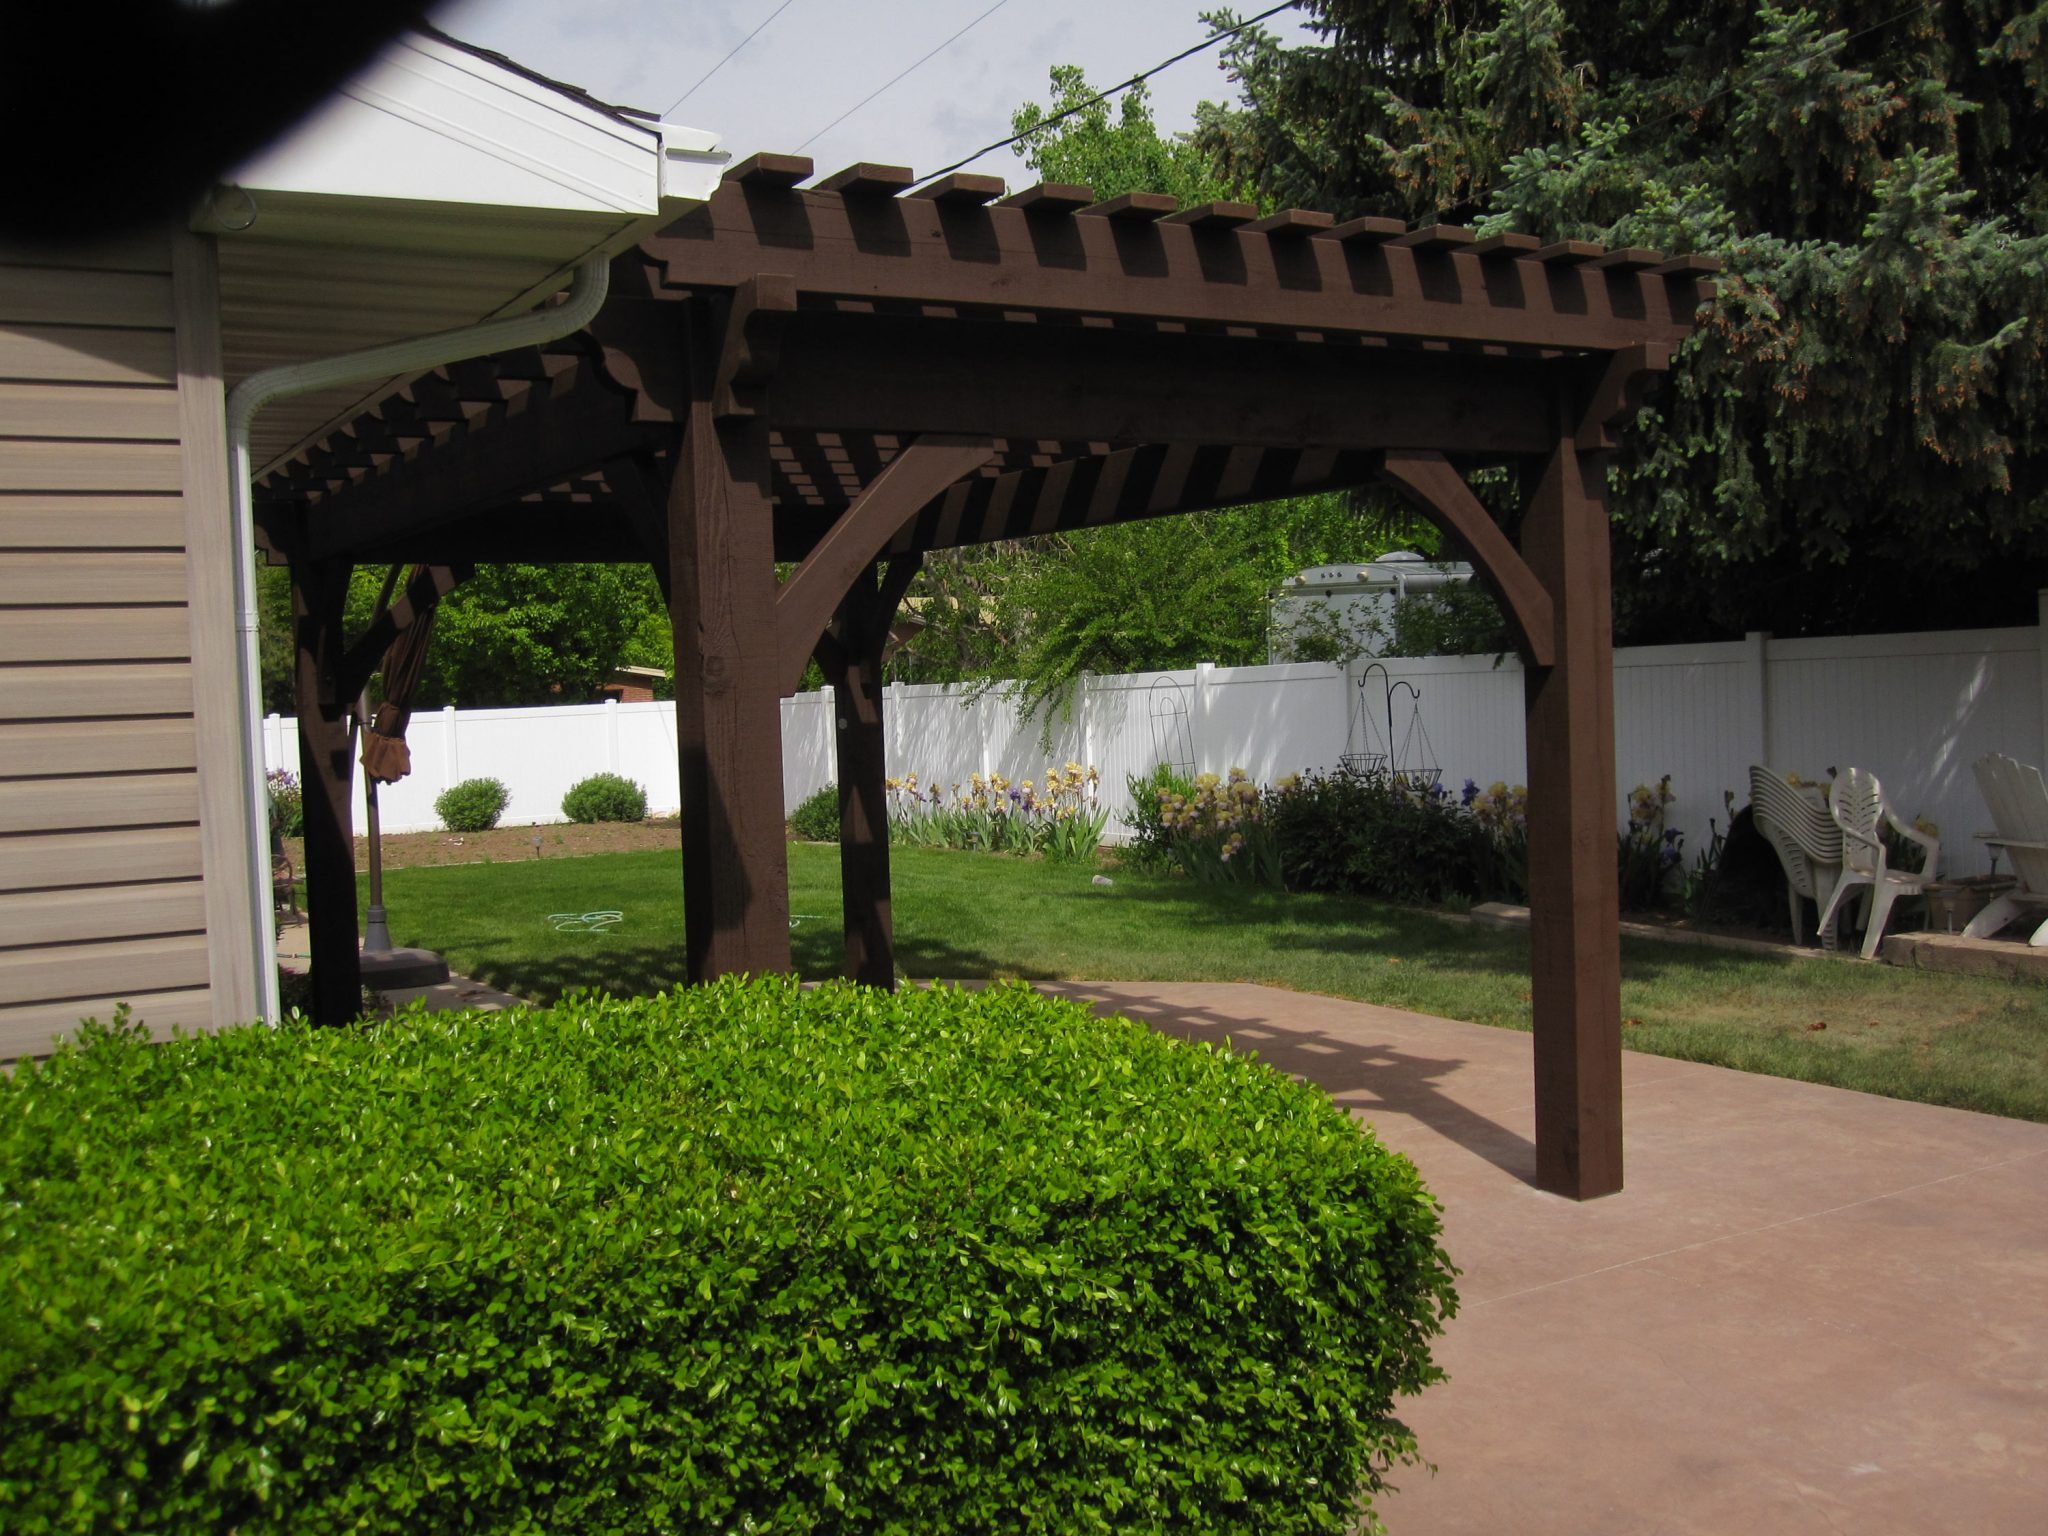 Diy Pergola Kits : Oversized diy timber frame pergola kit backyard